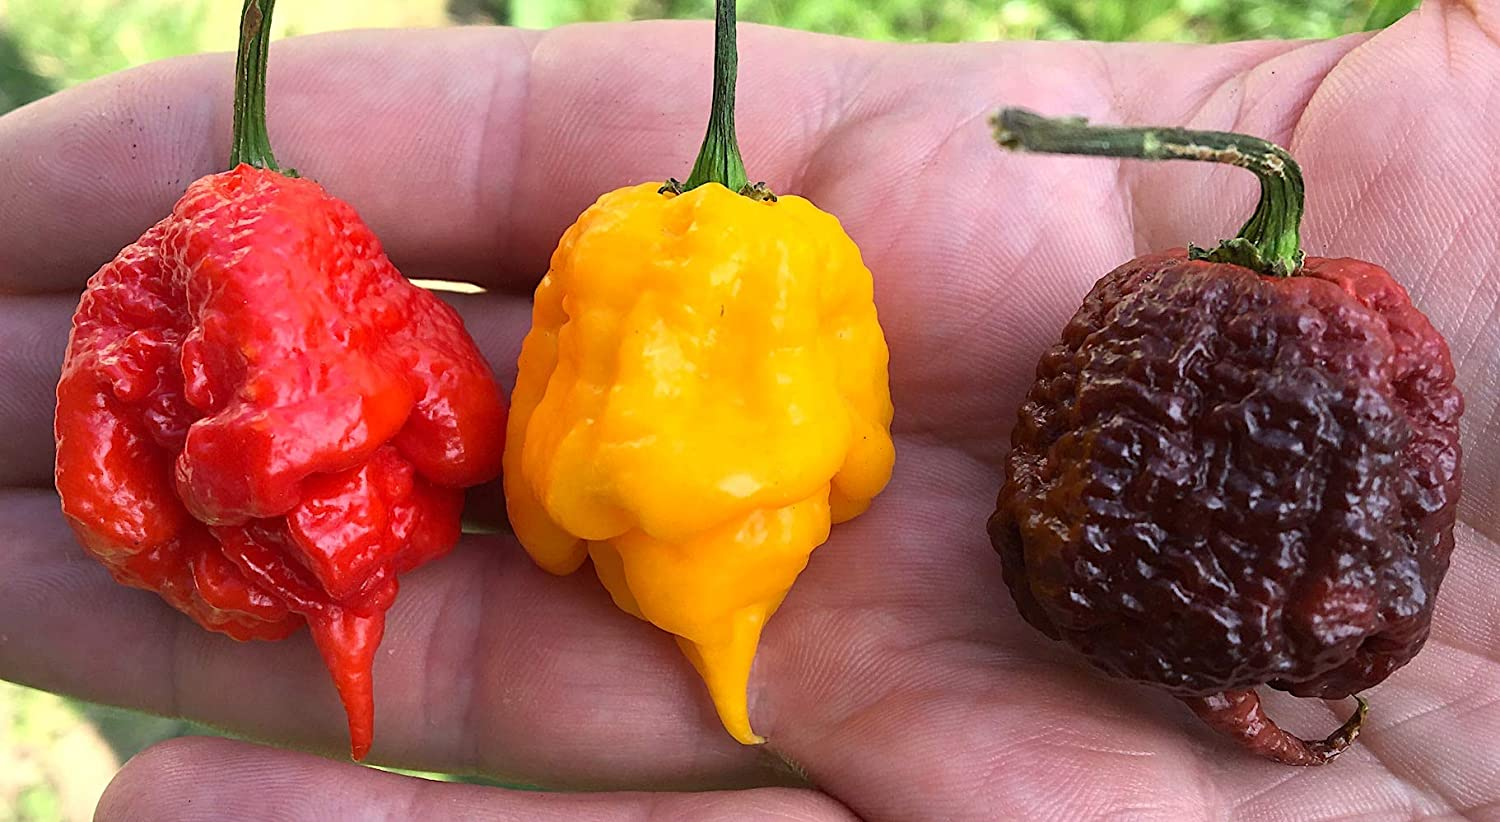 Carolina Reaper Collecction 30 Semillas Pura En 3 Color: Red, Chocolate, Yellow, Produccion Italia 100%